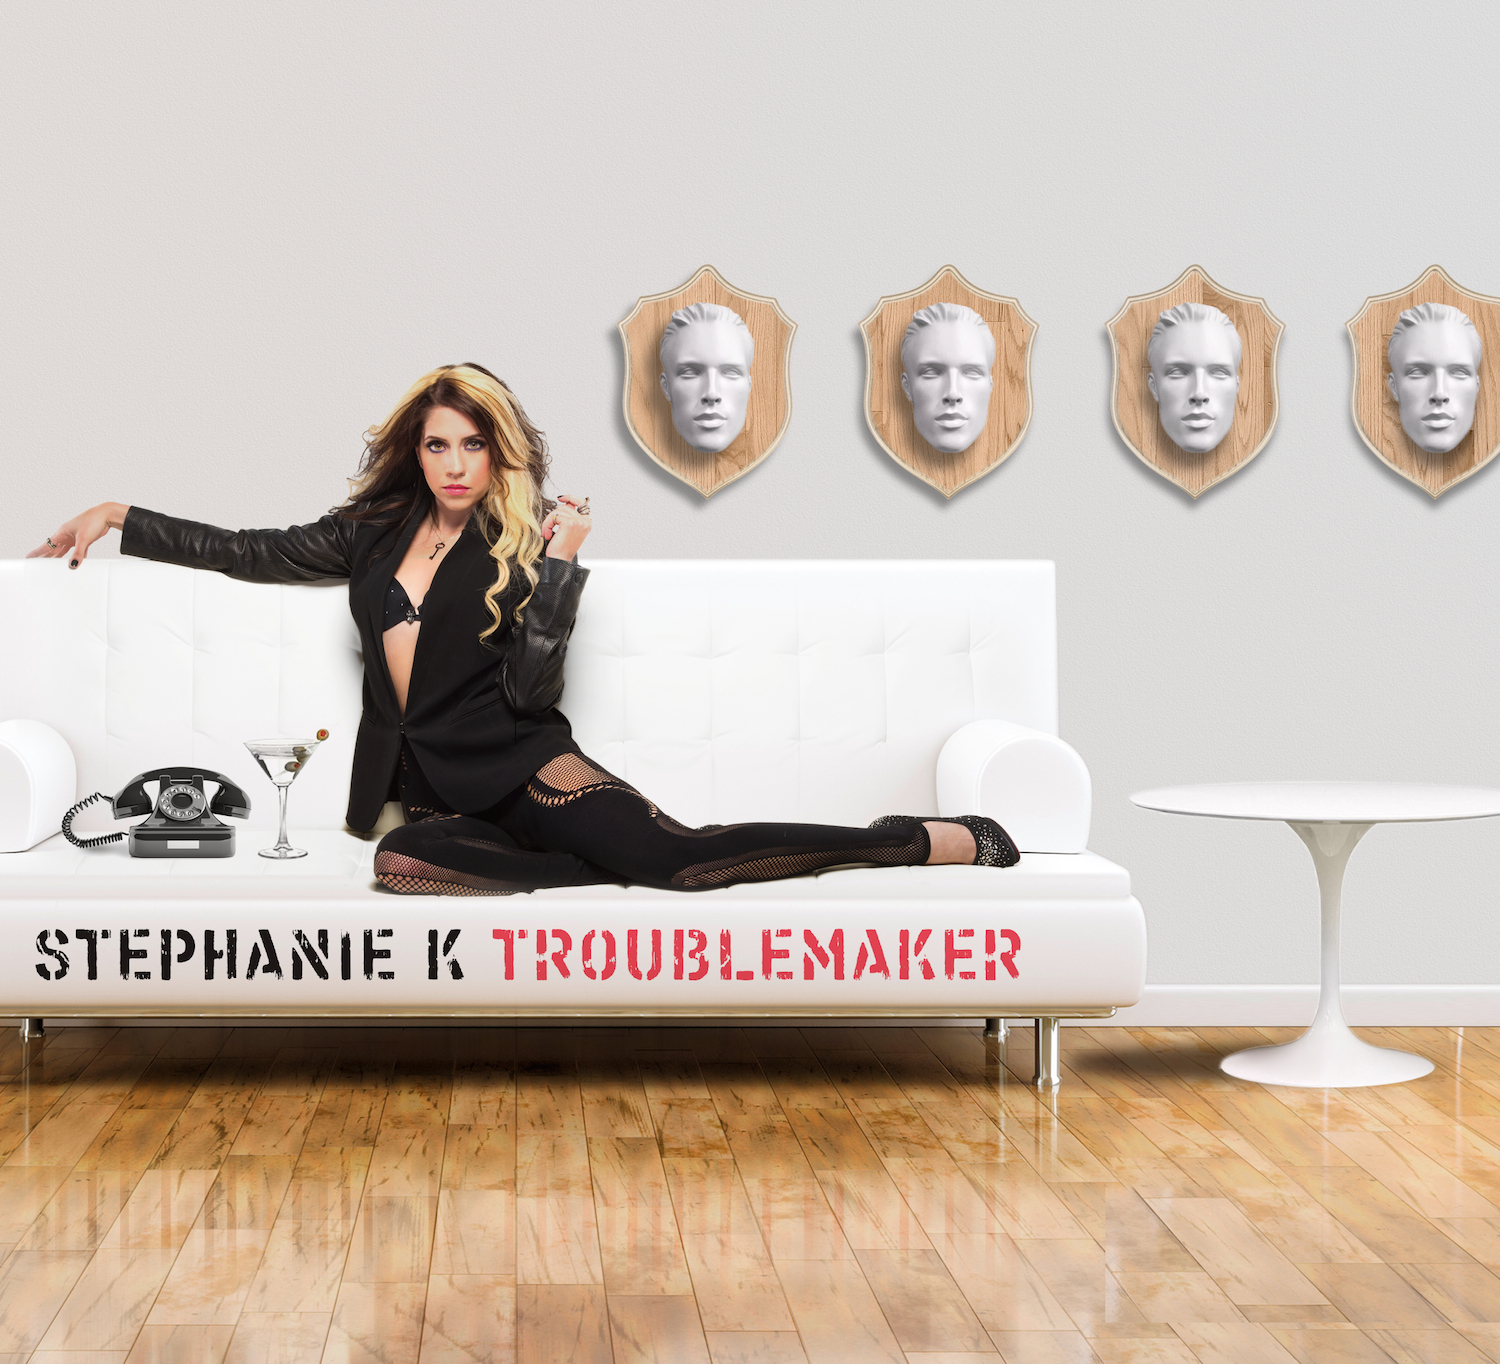 stephanie-k-troublemaker.jpg